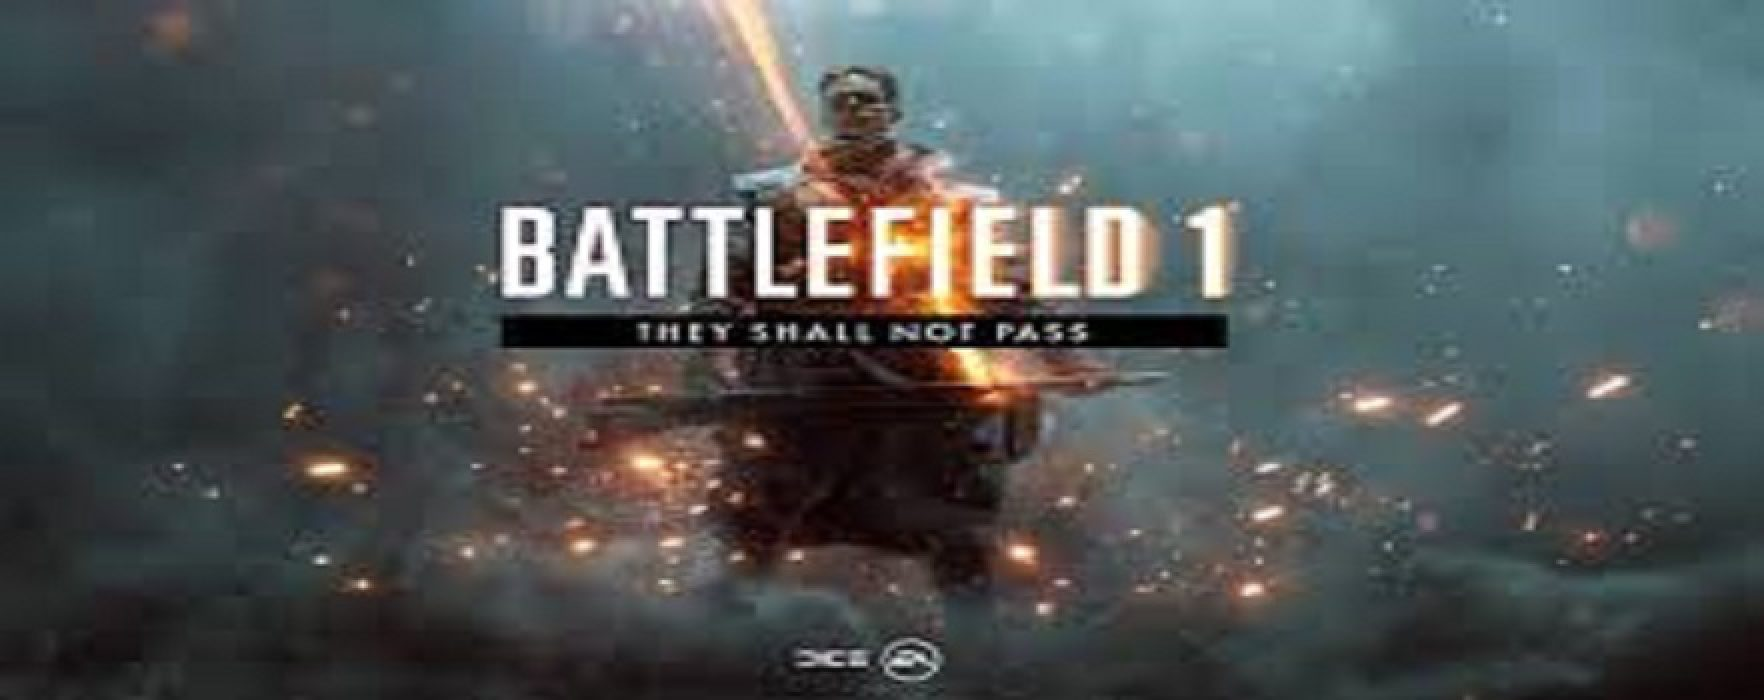 Battlefield 1: They Shall Not Pass Adds French Army Battles